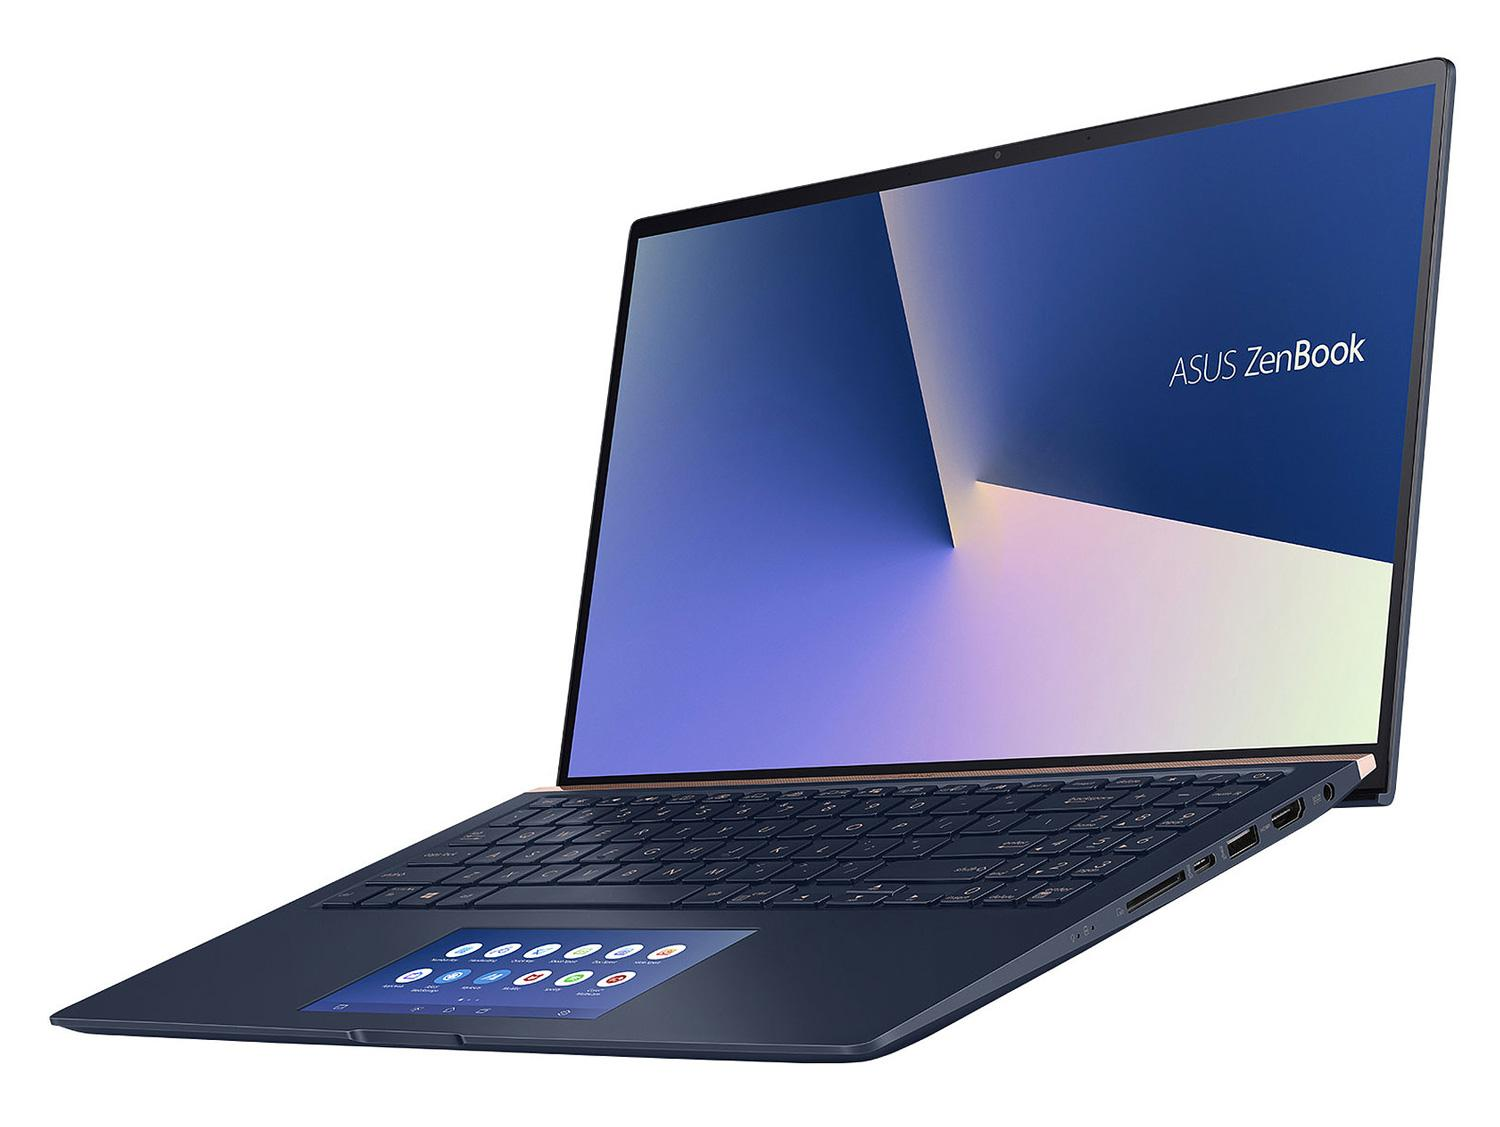 Ordinateur portable Asus ZenBook UX534FT-AA025R Bleu - 4K, GTX 1650 Max-Q, SSD 1 To, ScreenPad - photo 5